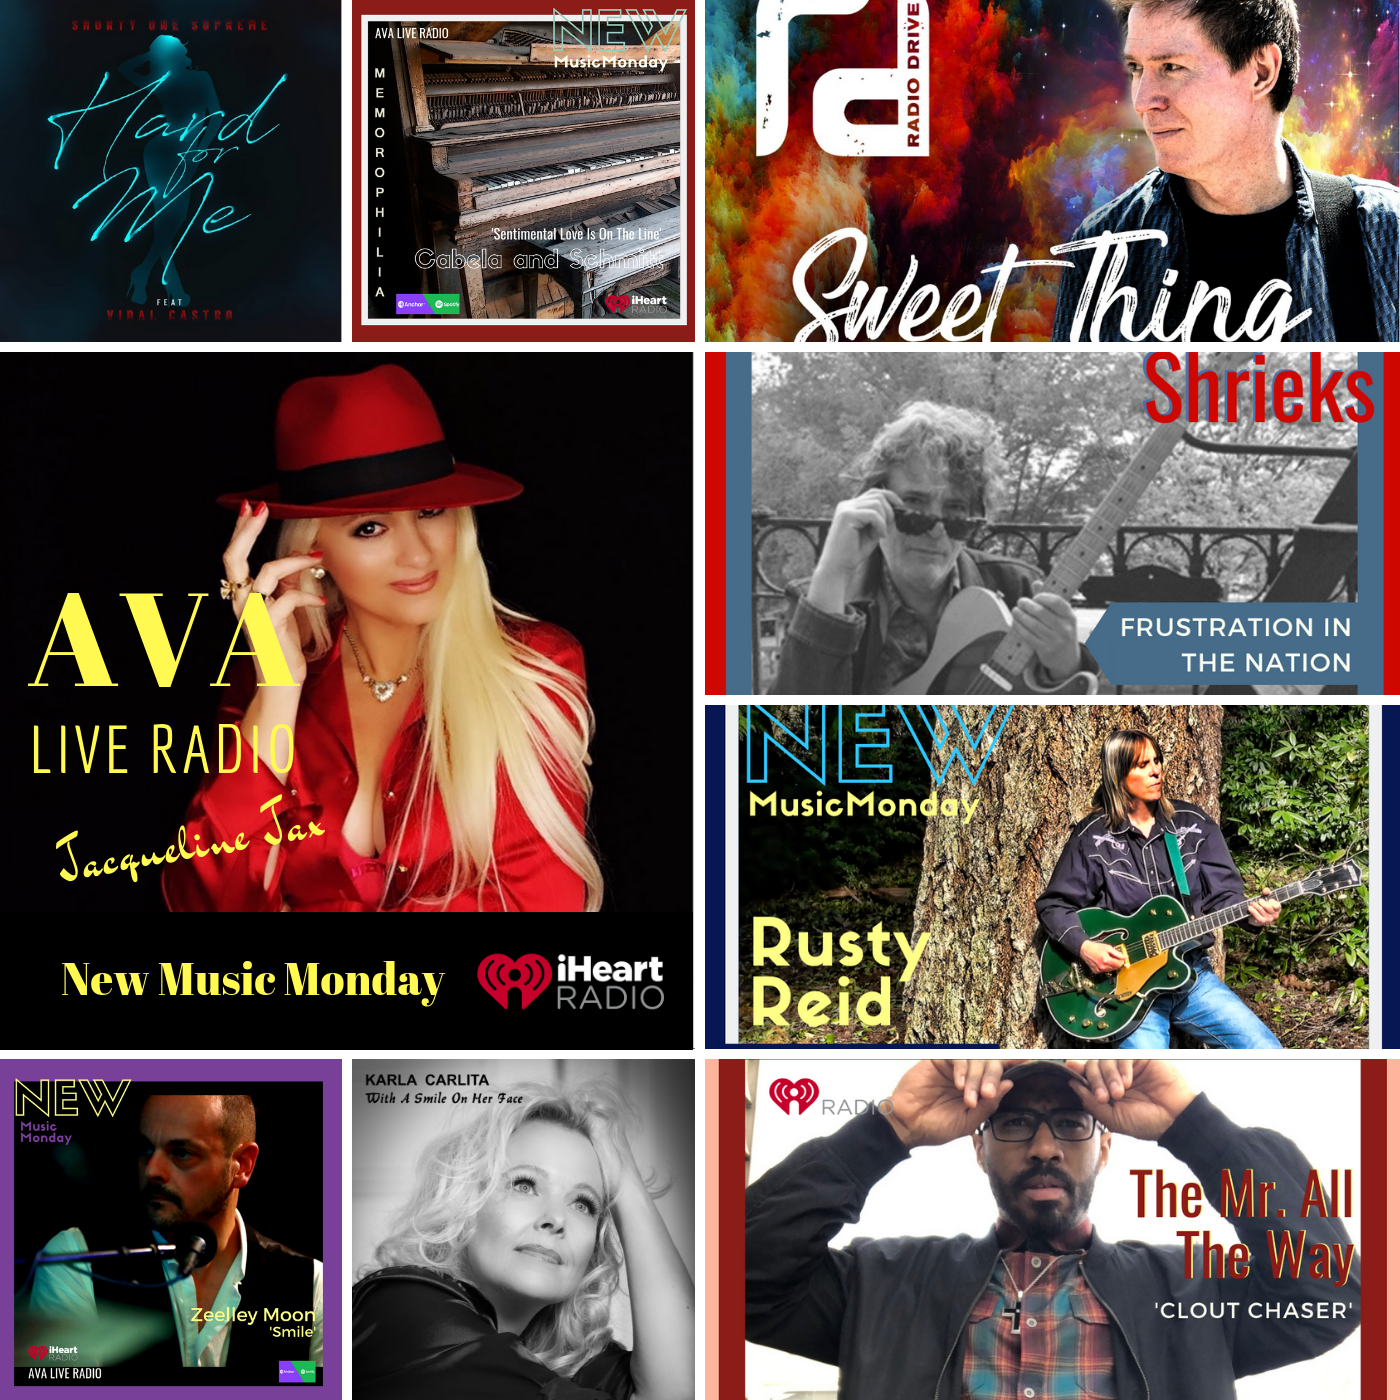 7.15 New Music Monday with Jacqueline Jax.png